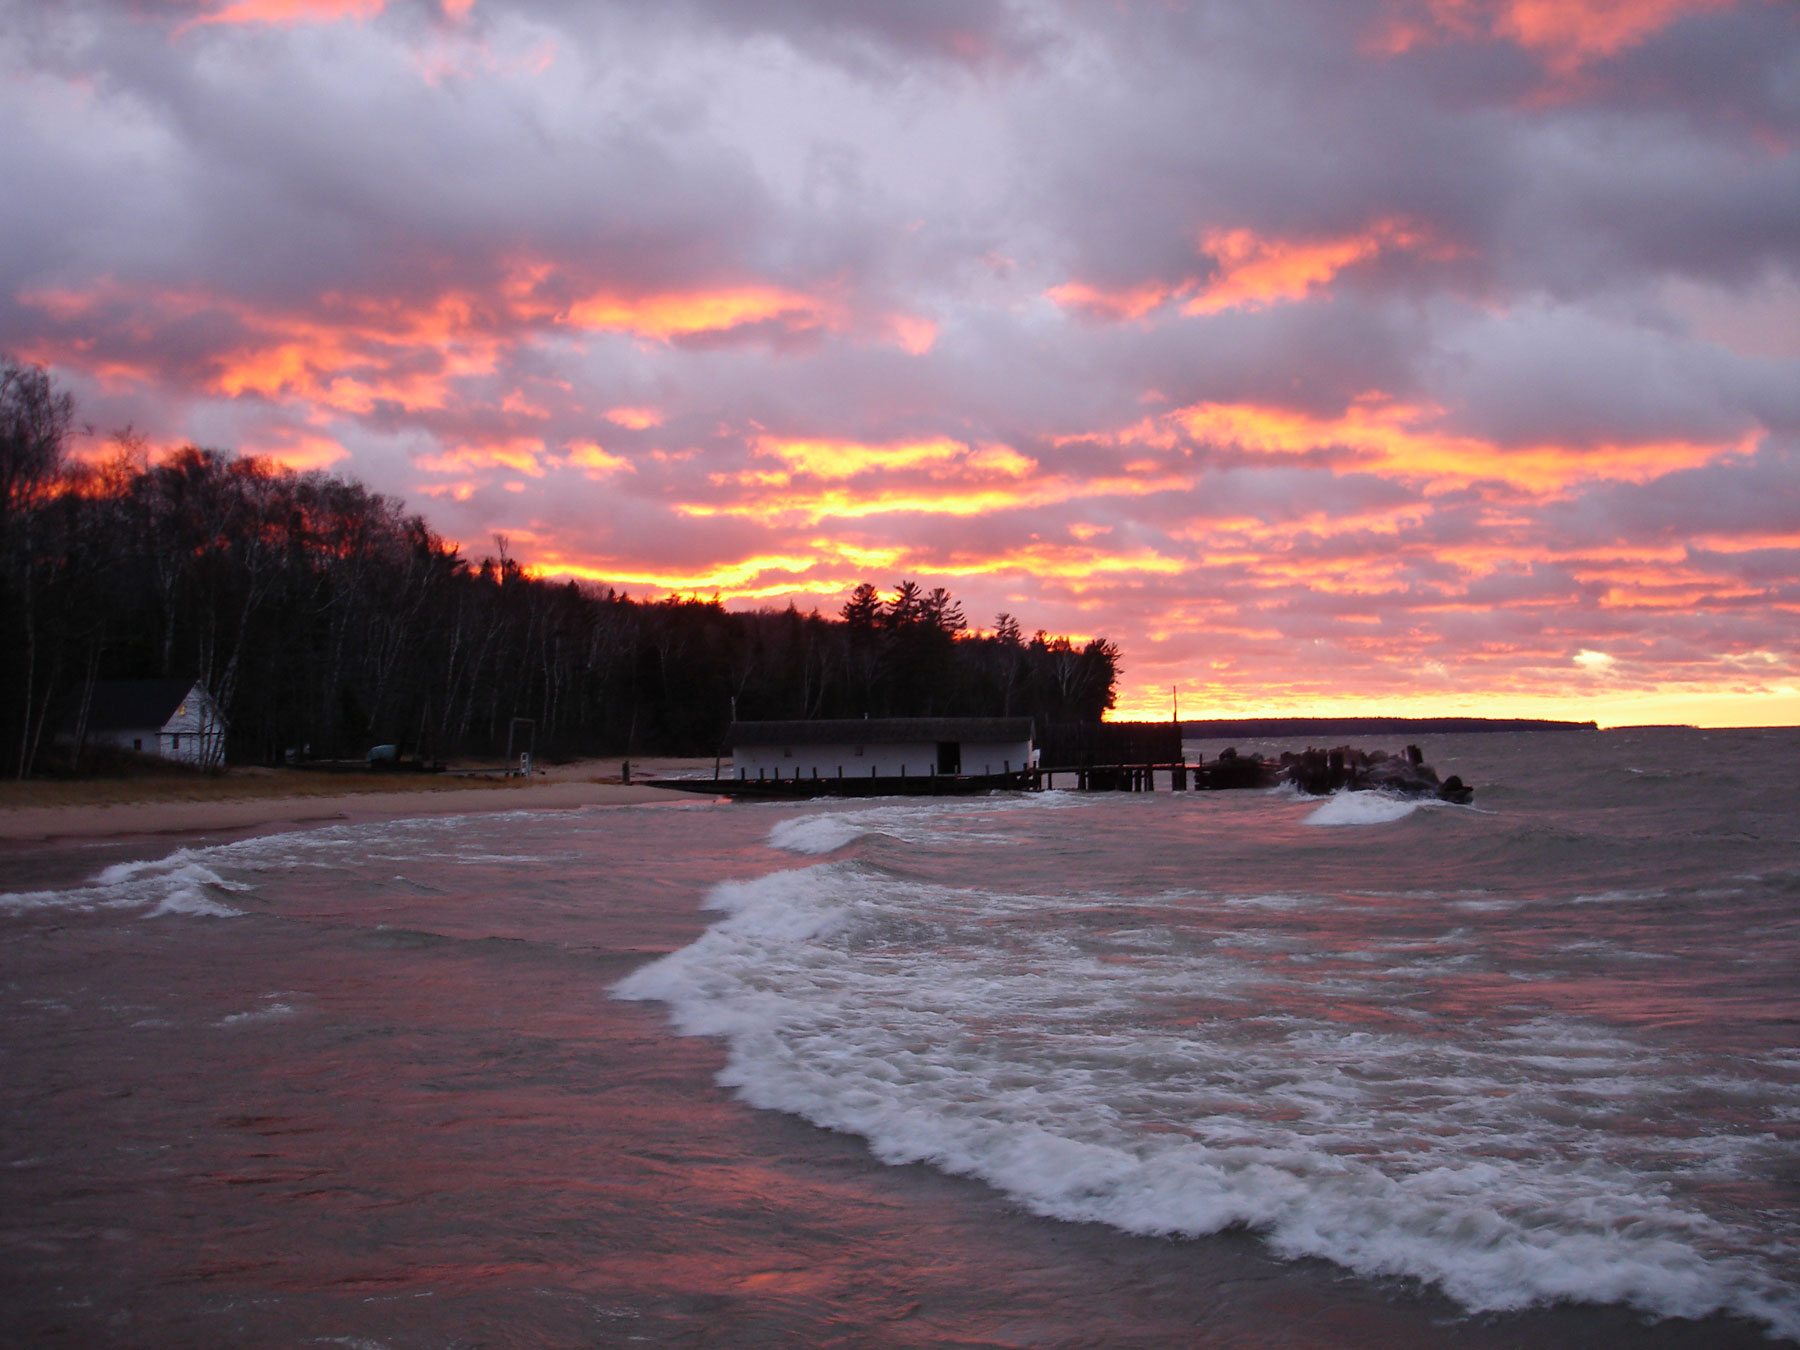 Sunset at the Hokenson Fishery dock in Little Sand Bay